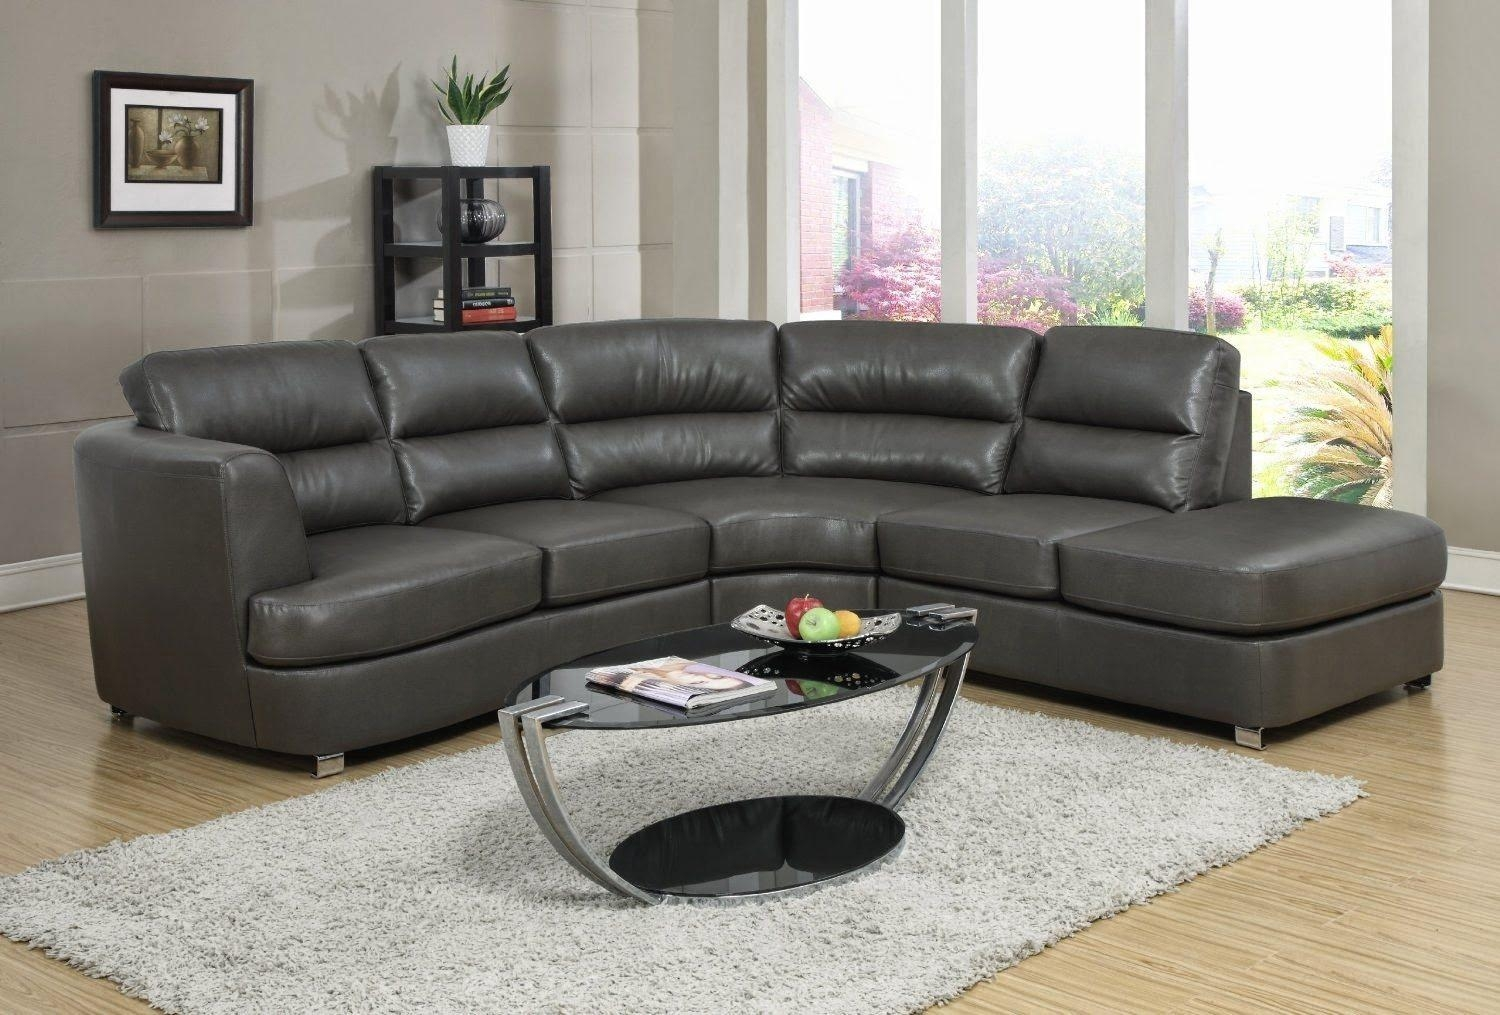 Sofas Center : 31 Marvelous Charcoal Leather Sofa Photos Design Within Charcoal Grey Leather Sofas (Image 15 of 20)